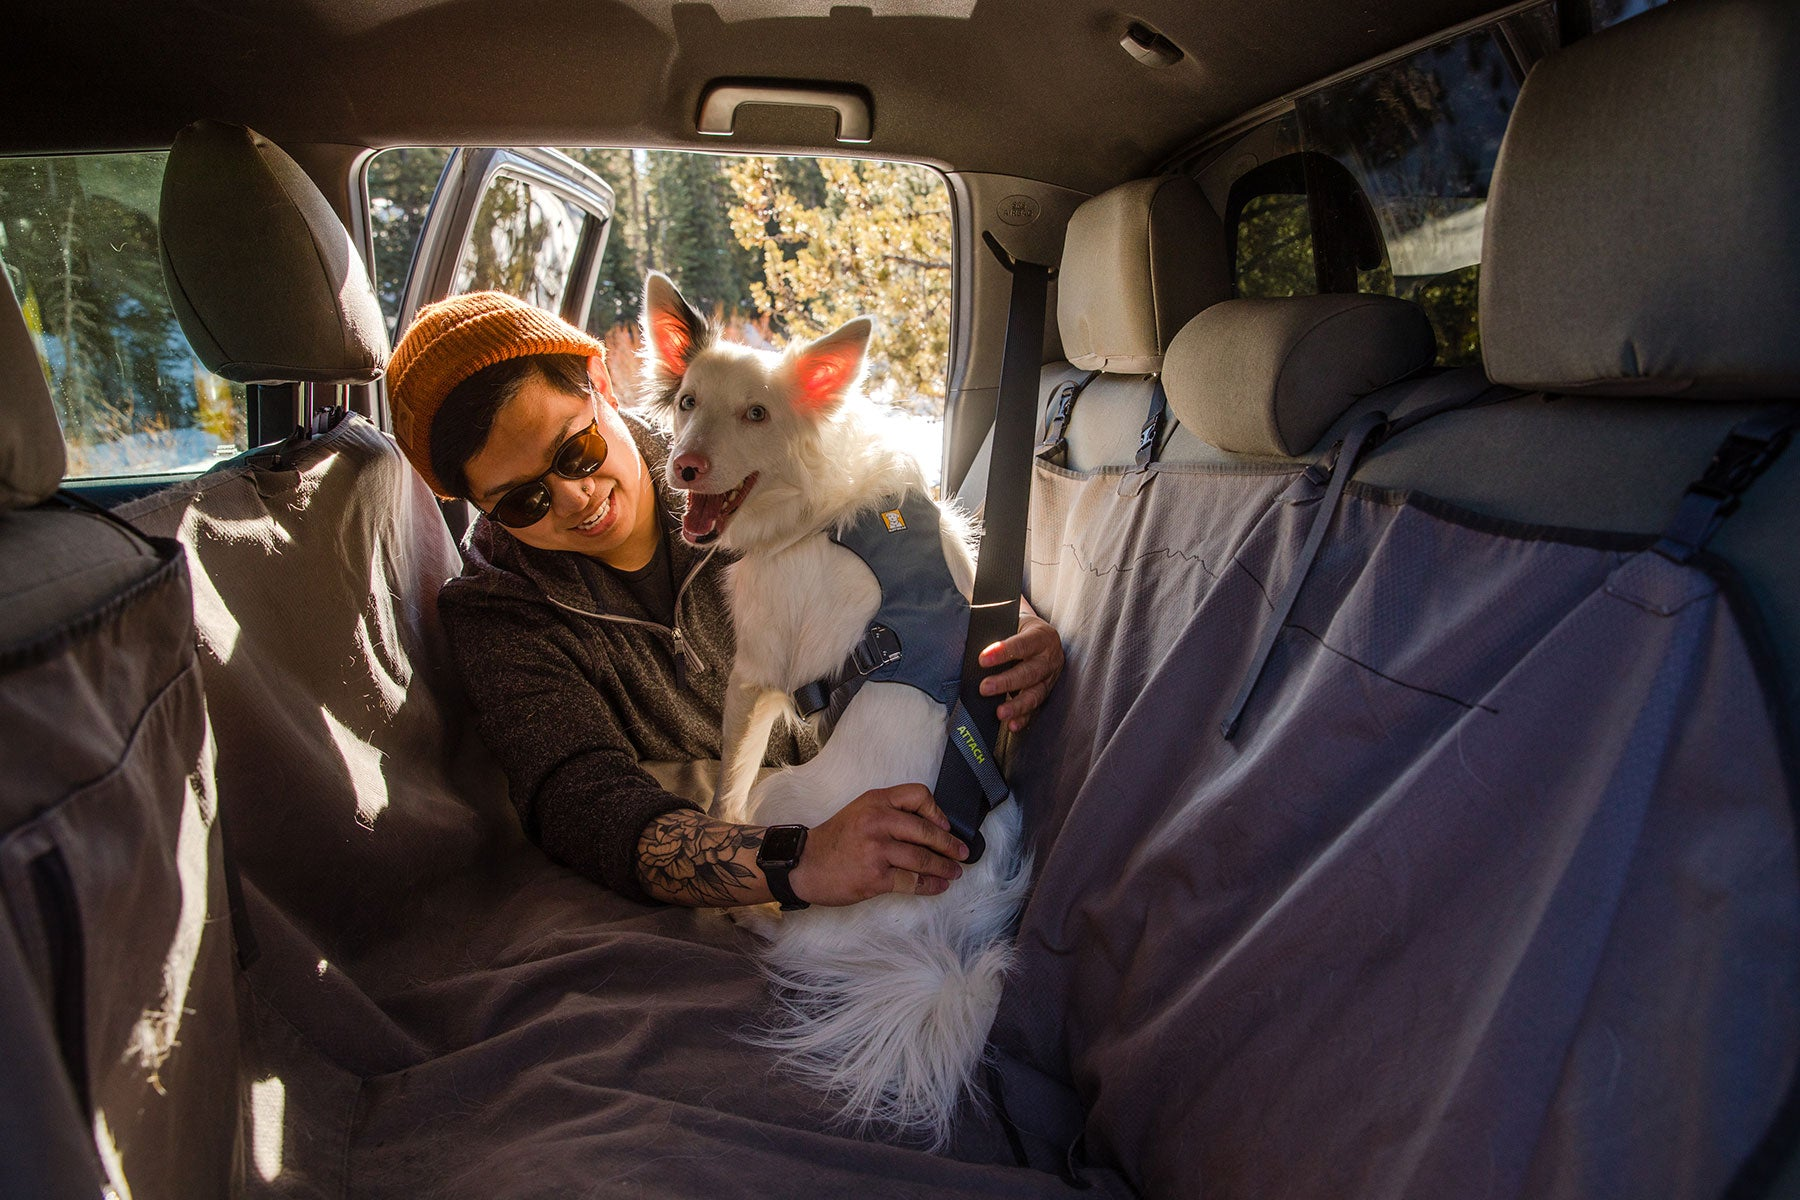 Human and dog getting buckled up in a car